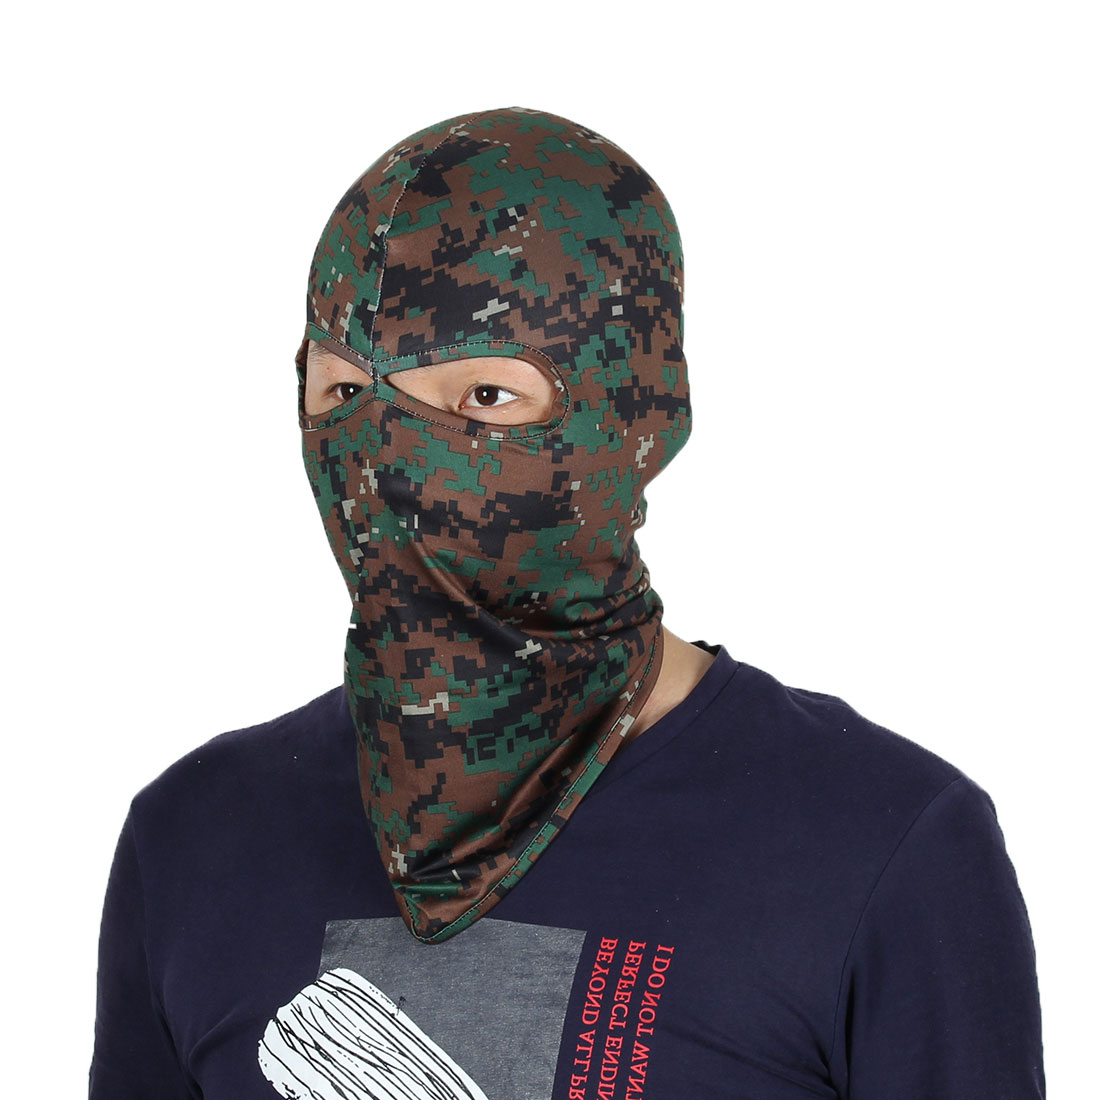 Full Coverage Face Mask Eyes Holes Neck Protector Head Hood Helmet Balaclava by Unique-Bargains